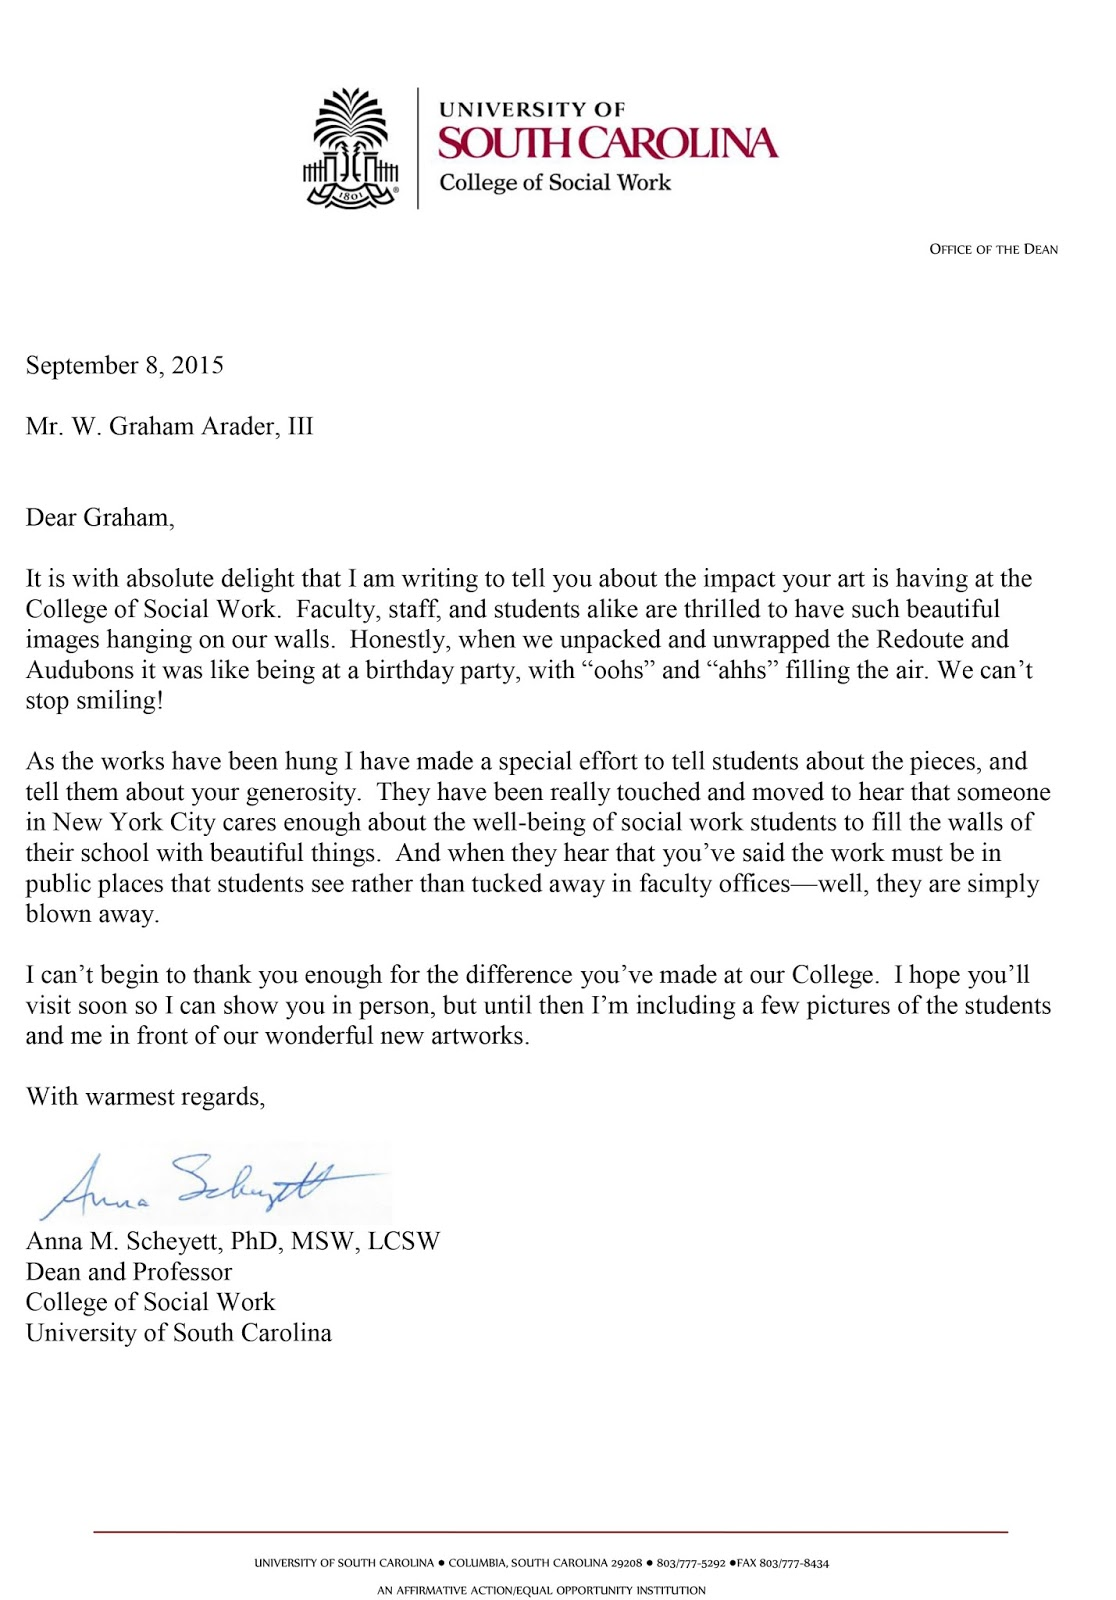 Graham arader a fine thank you letter from the dean of social work a fine thank you letter from the dean of social work at the university of south carolina expocarfo Images